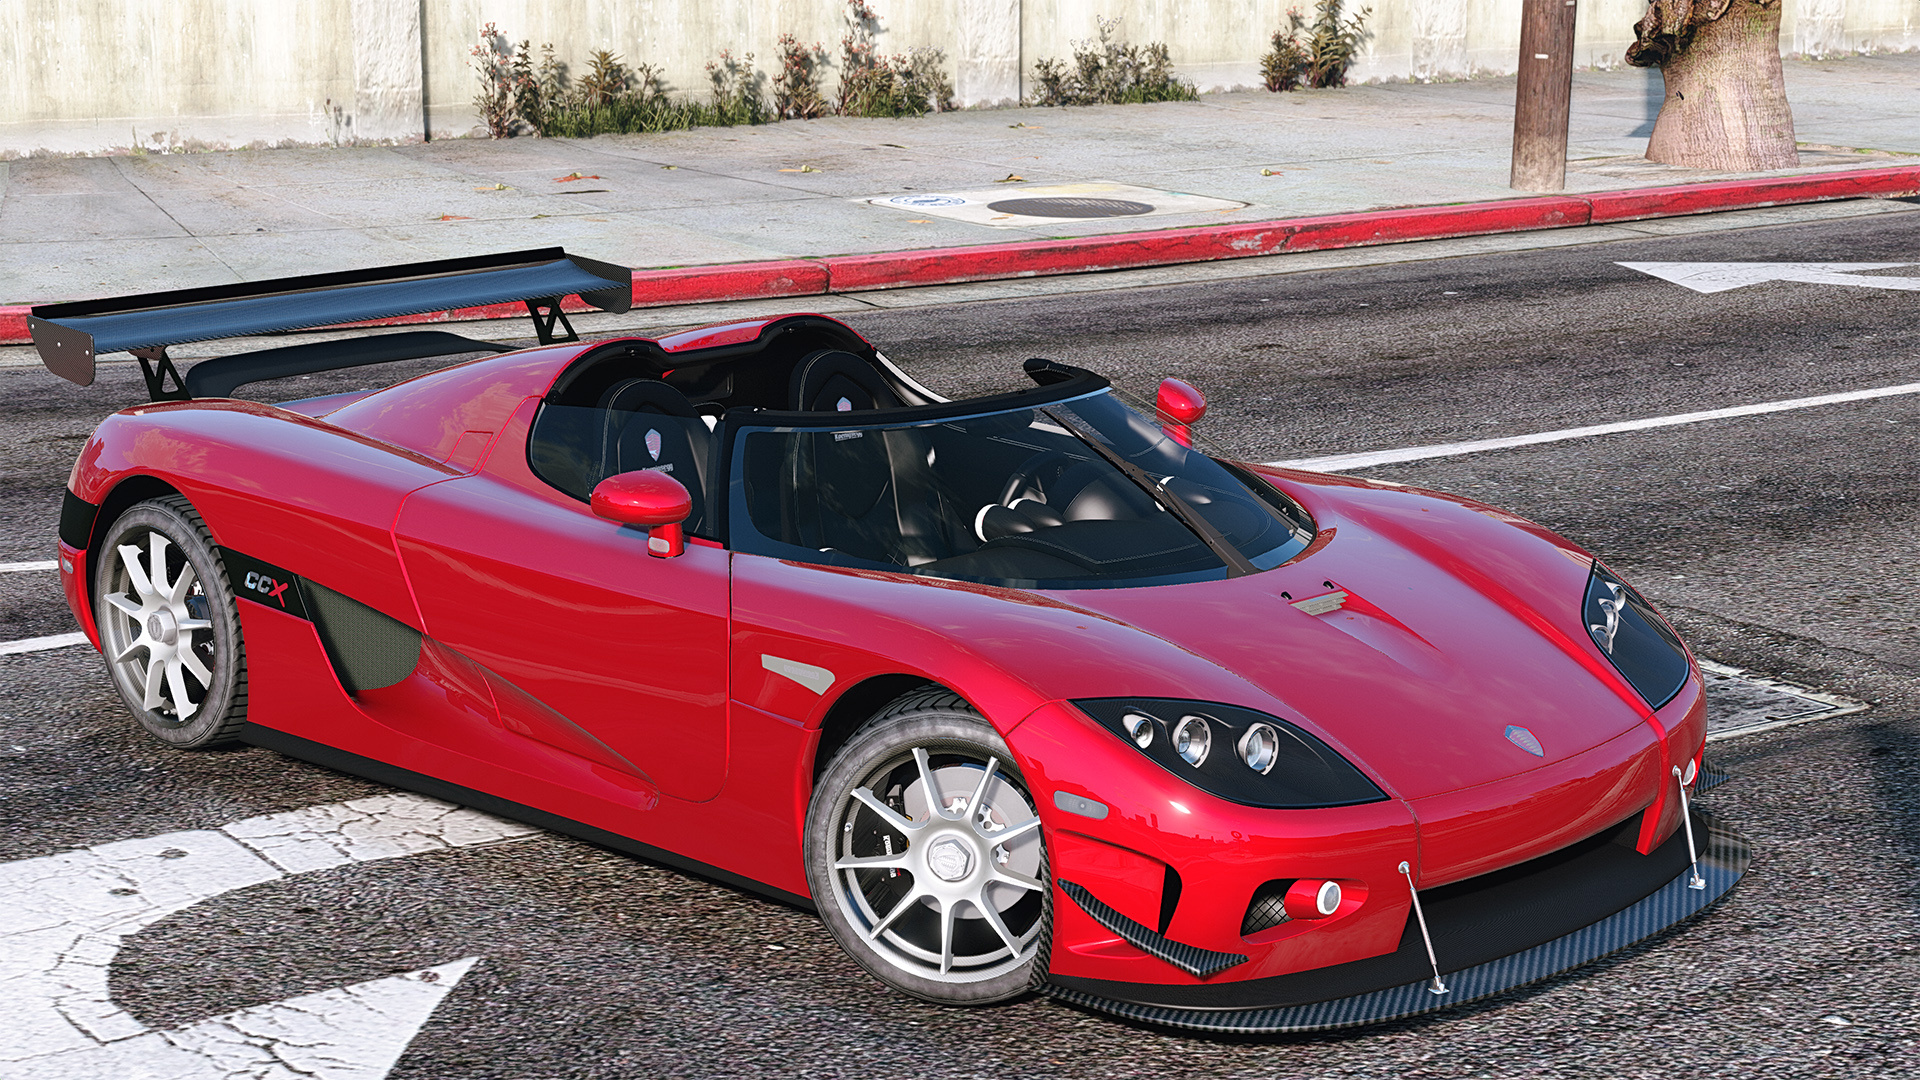 2006 Koenigsegg Ccx Autovista Add On Replace Tuning Gta5 Mods Com